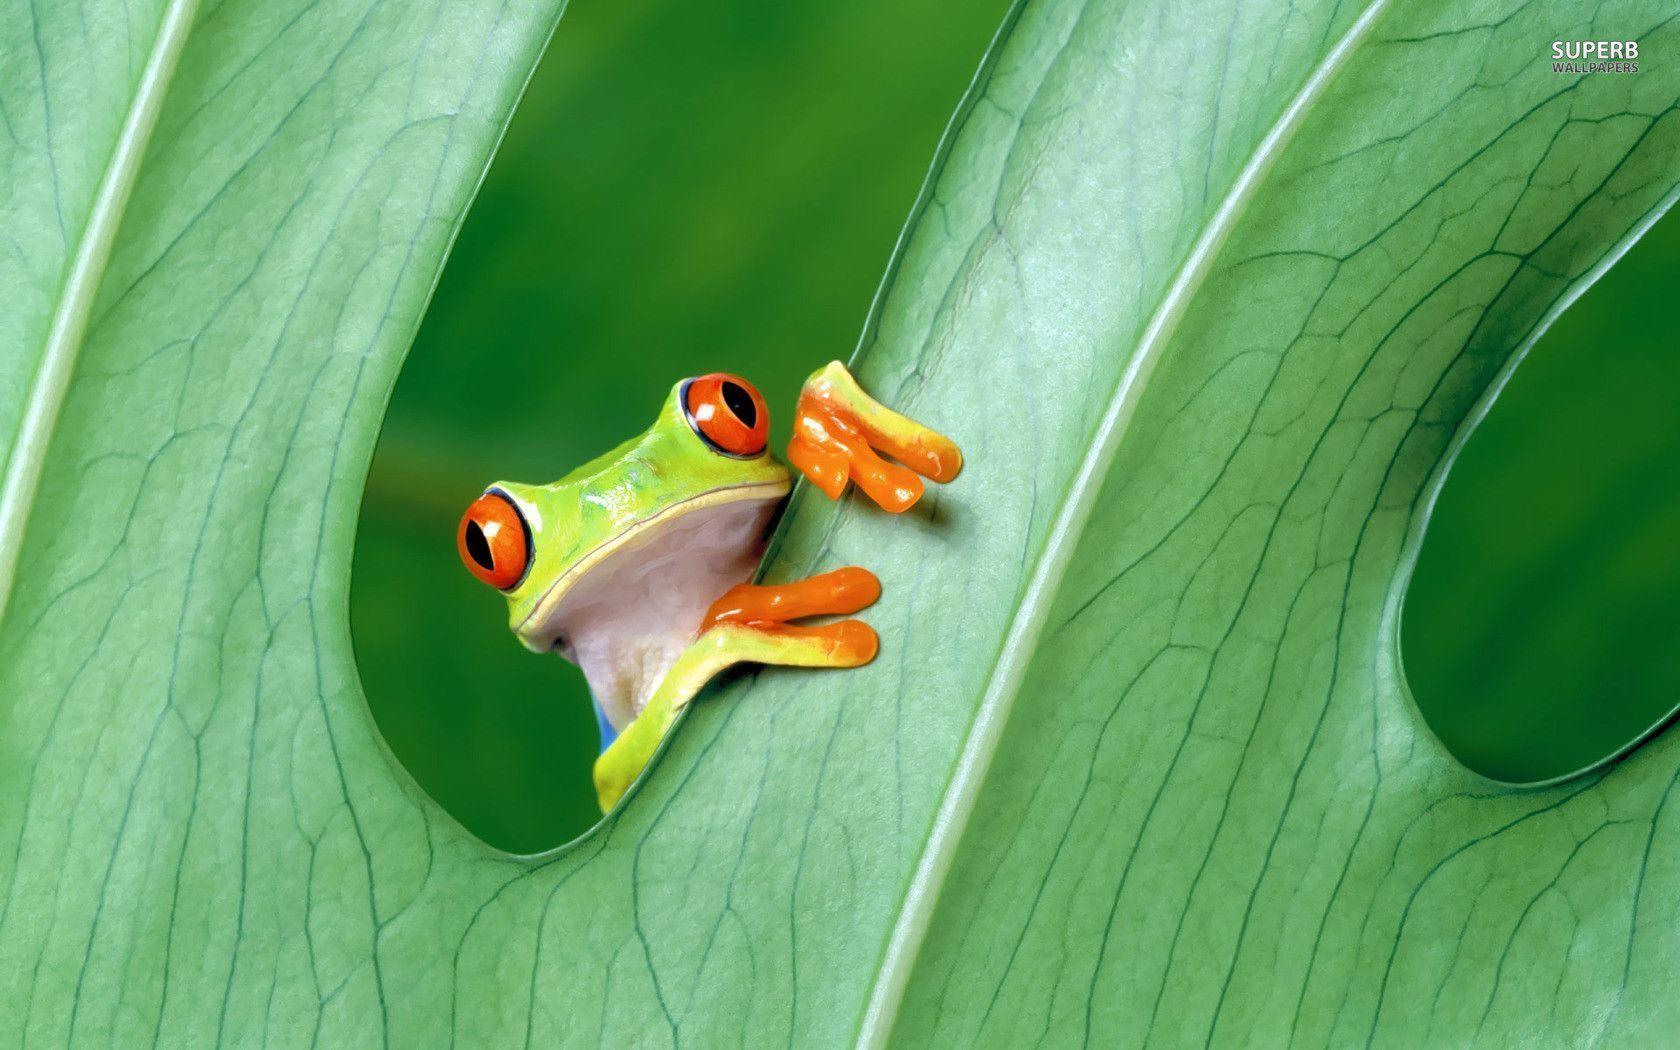 Tree Frog Wallpapers - Wallpaper Cave